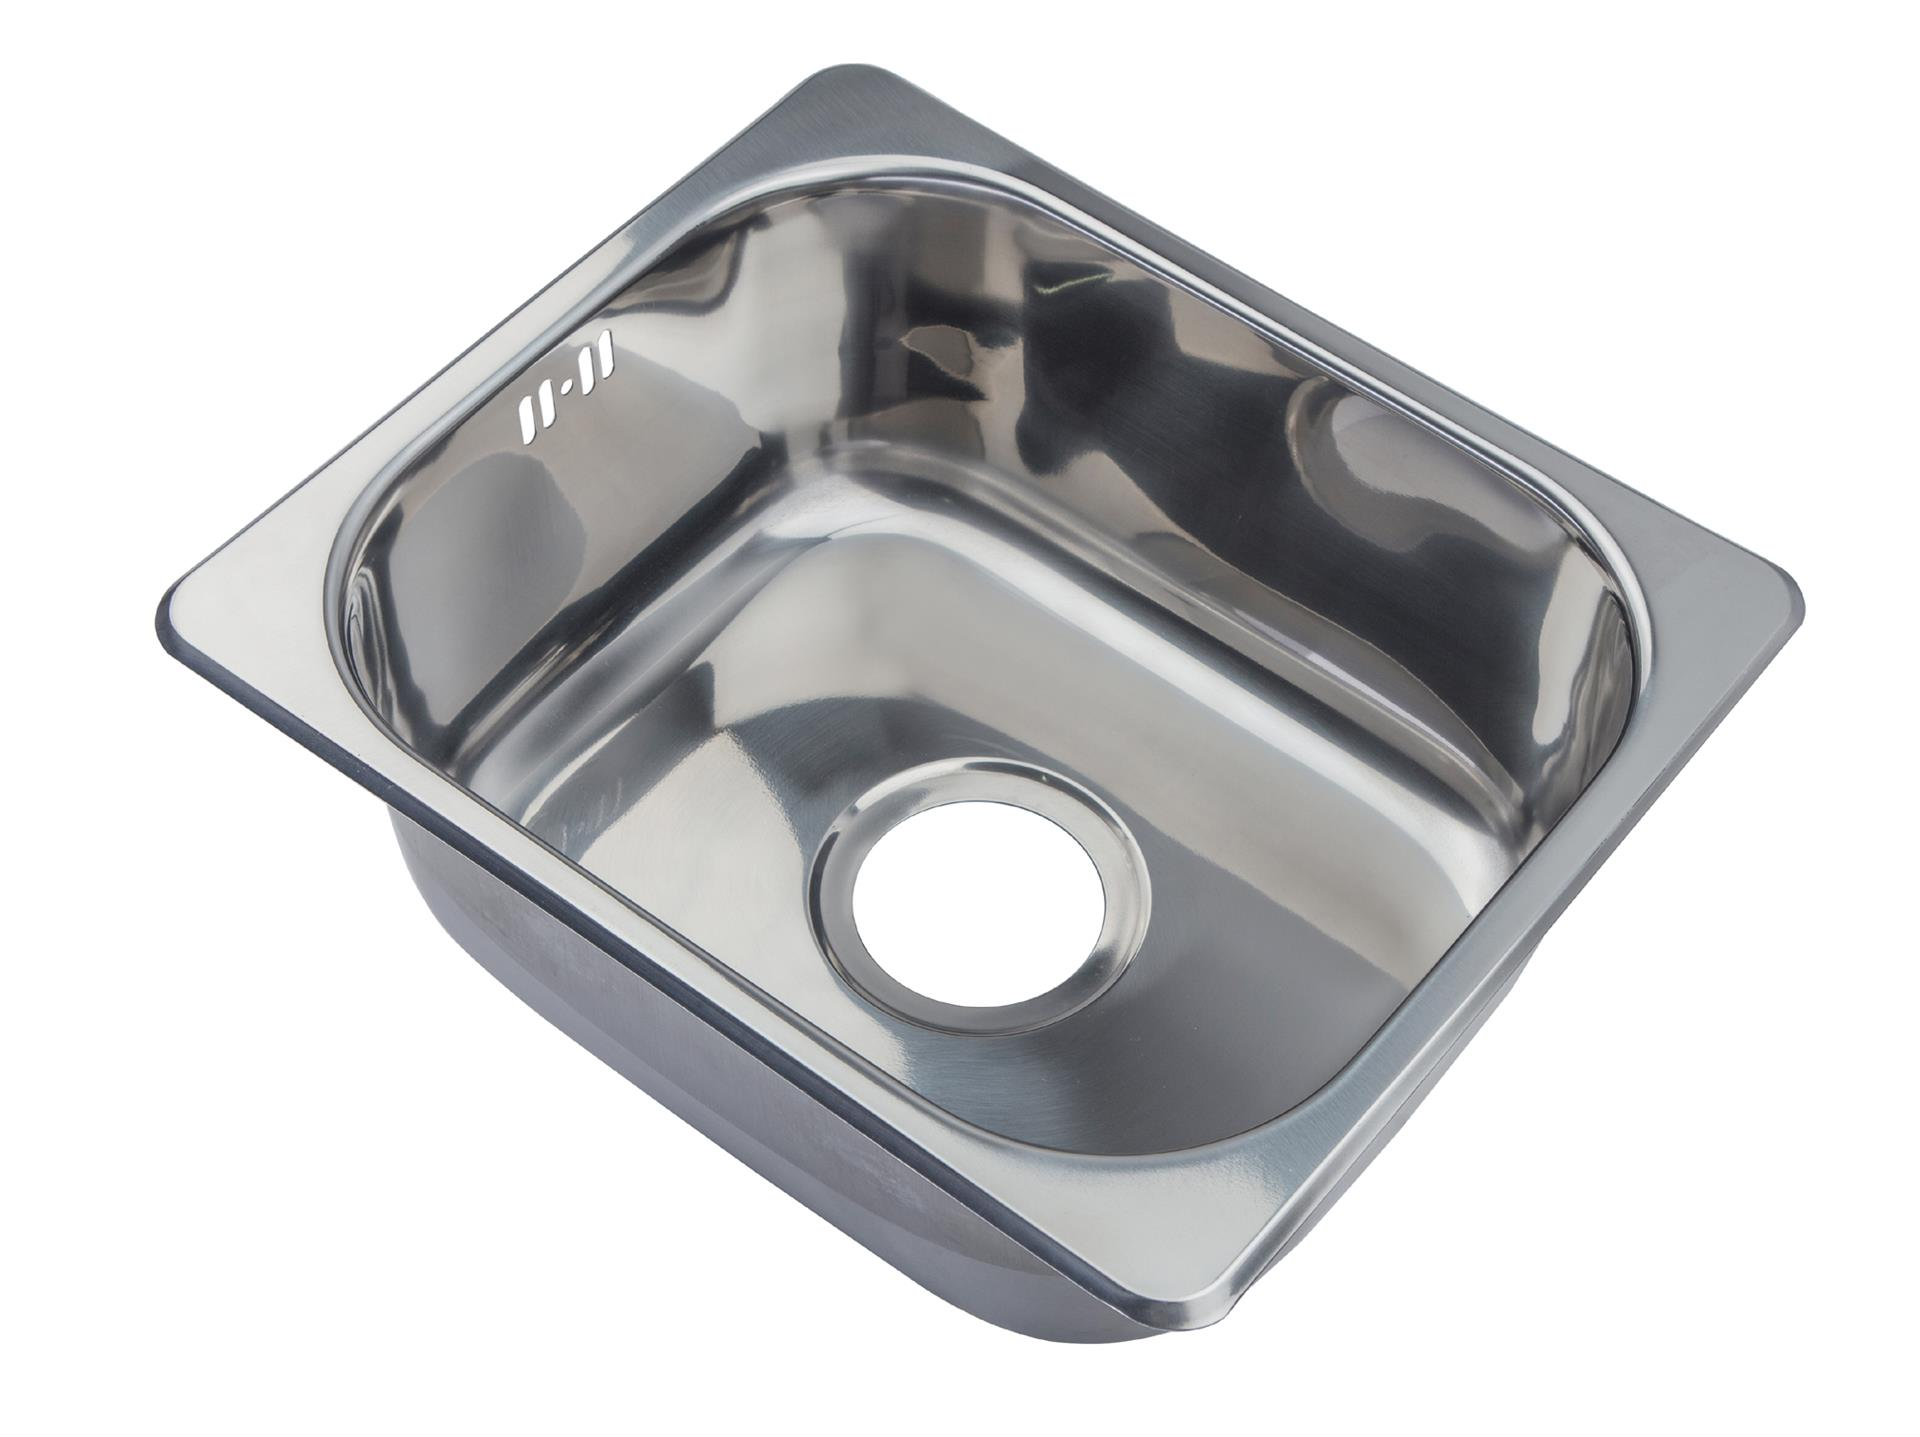 Details about Small Top Mount Inset Stainless Steel Kitchen Sinks With ...